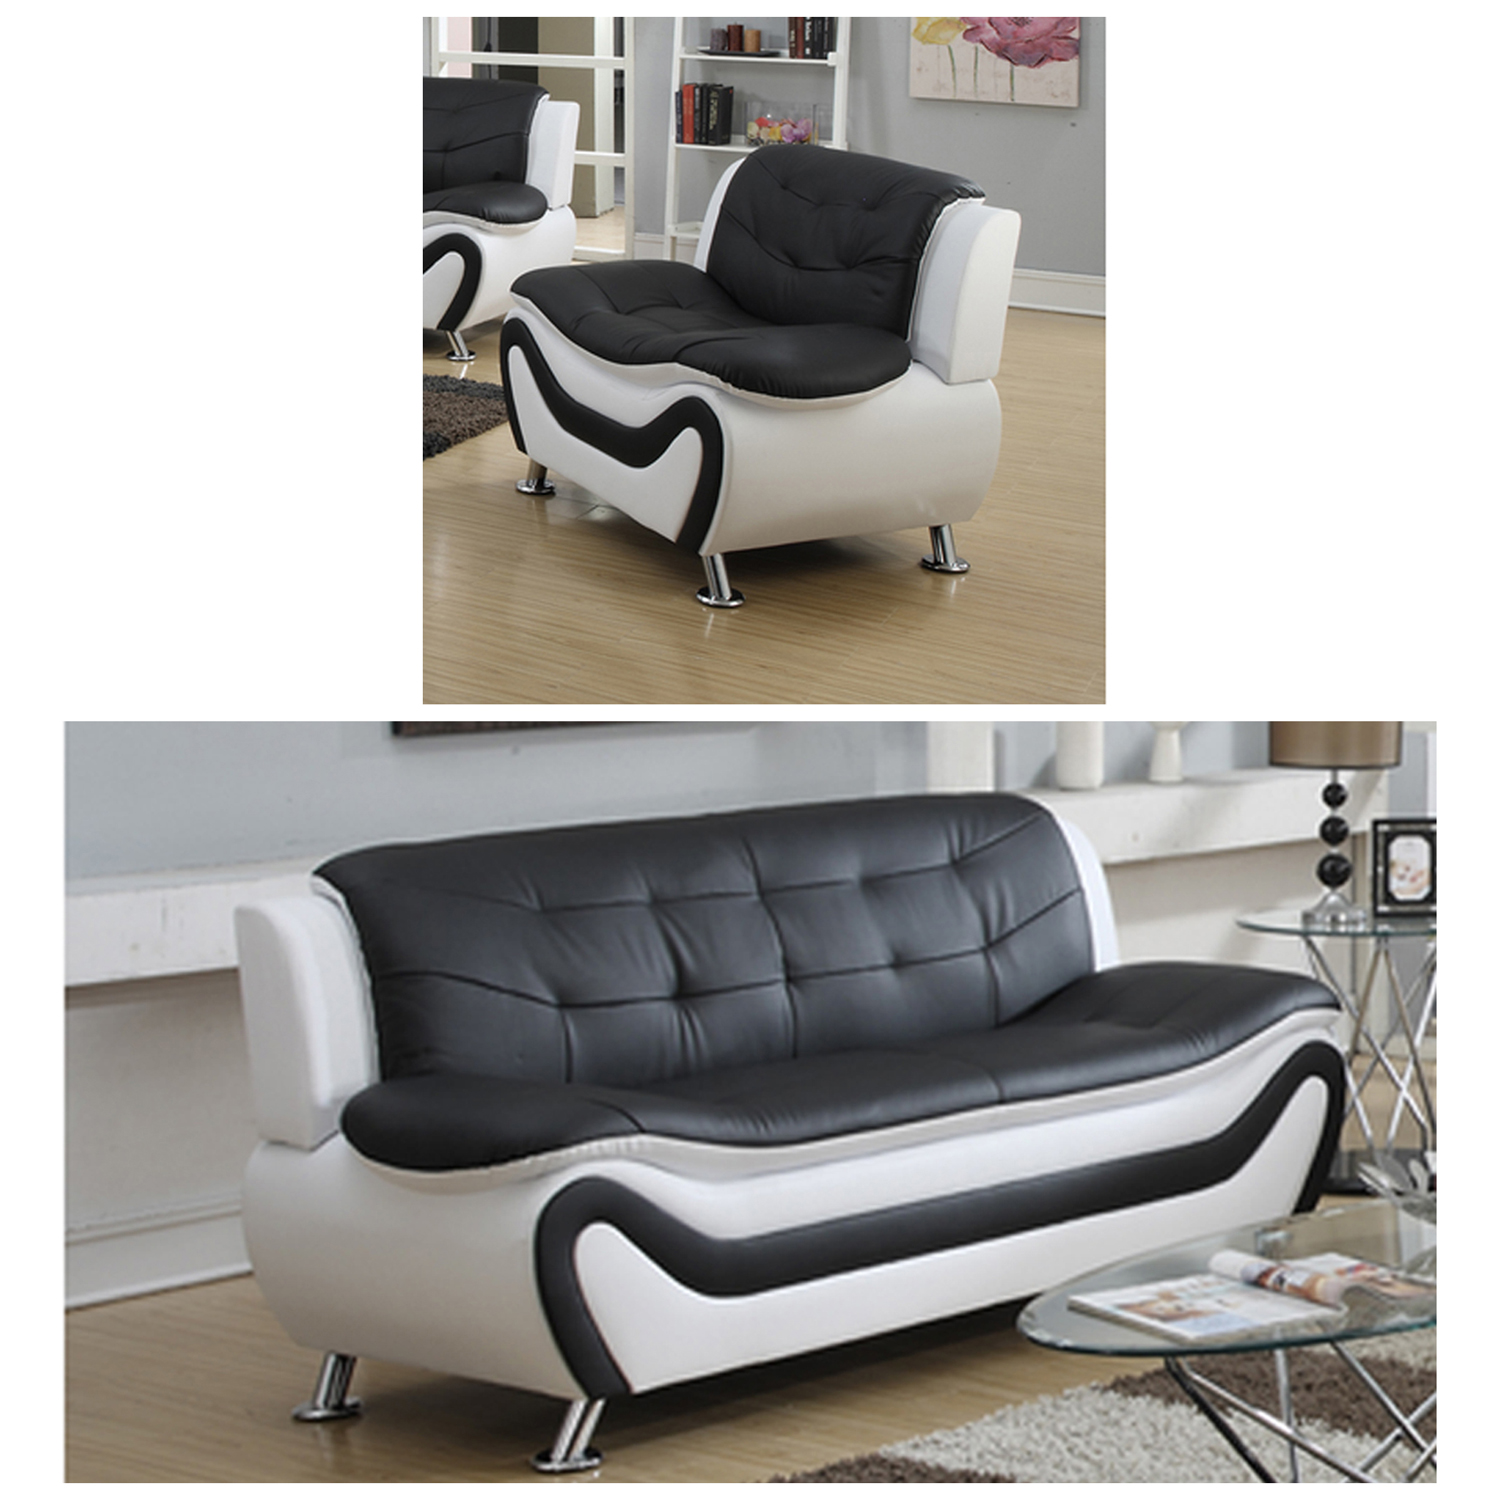 Frady Black and White Faux Leather Modern Living Room Sofa and Chair Set